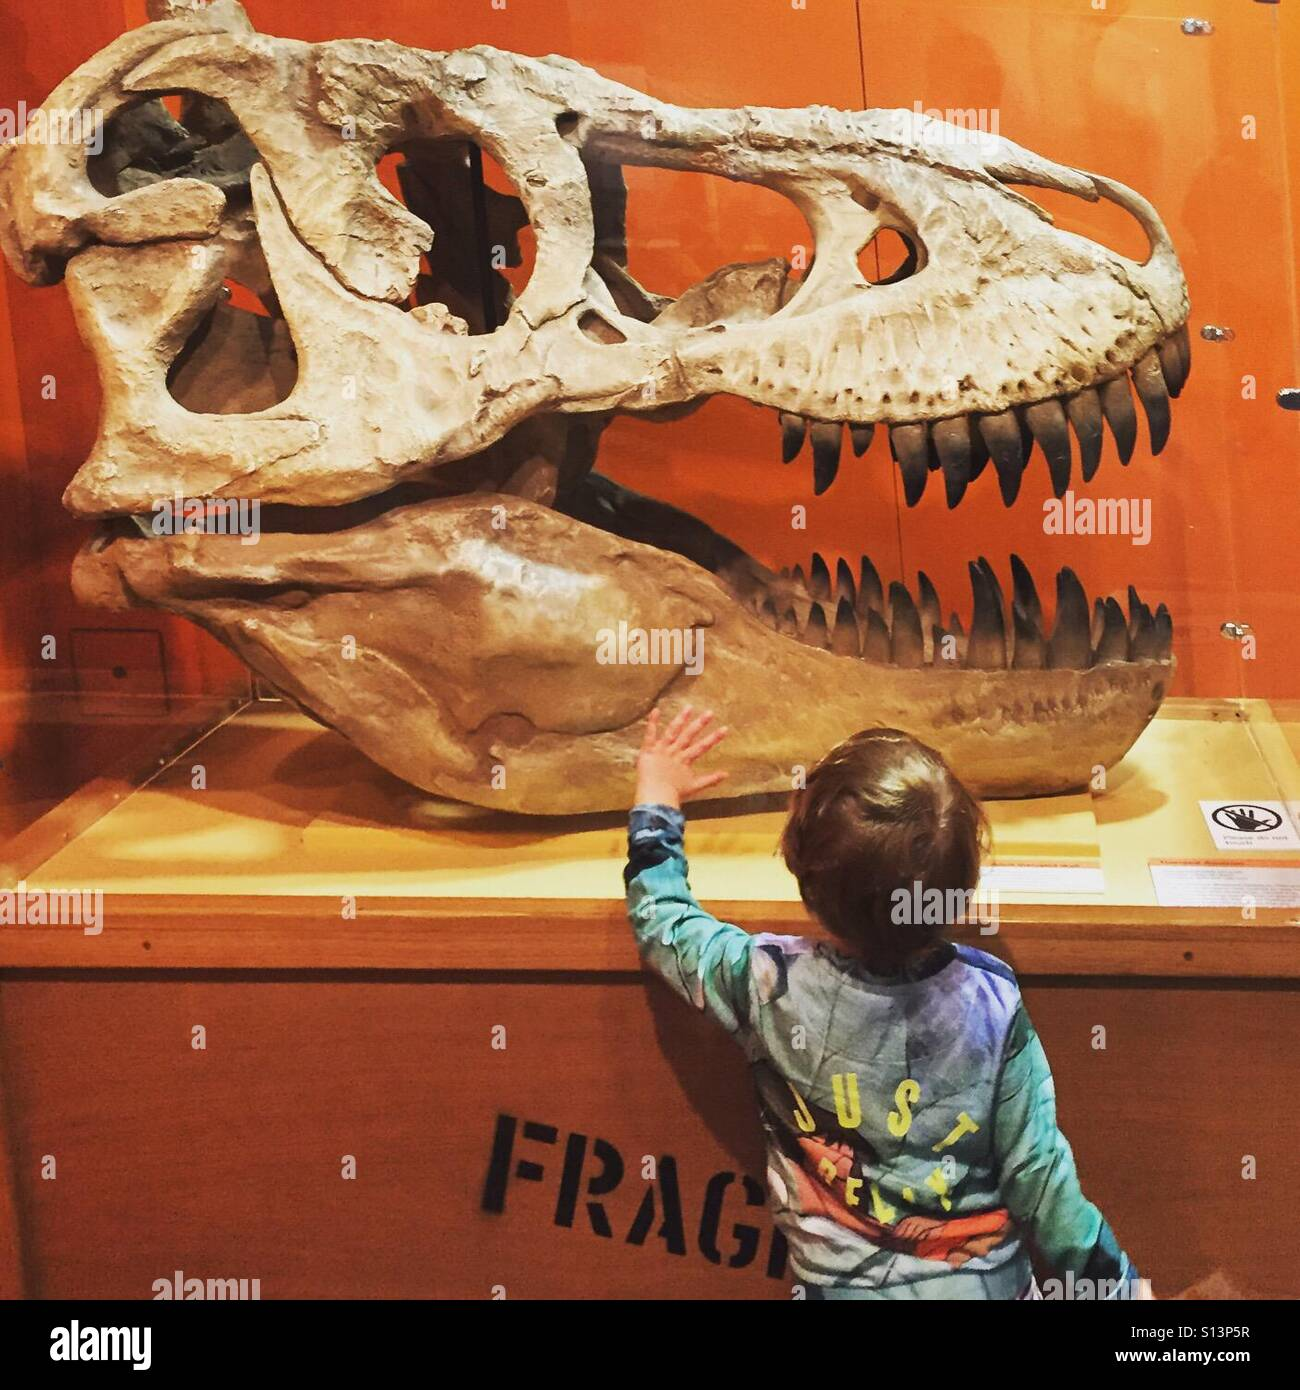 A young boy is fascinated with the large fossil skull of a dinosaur in a museum - Stock Image